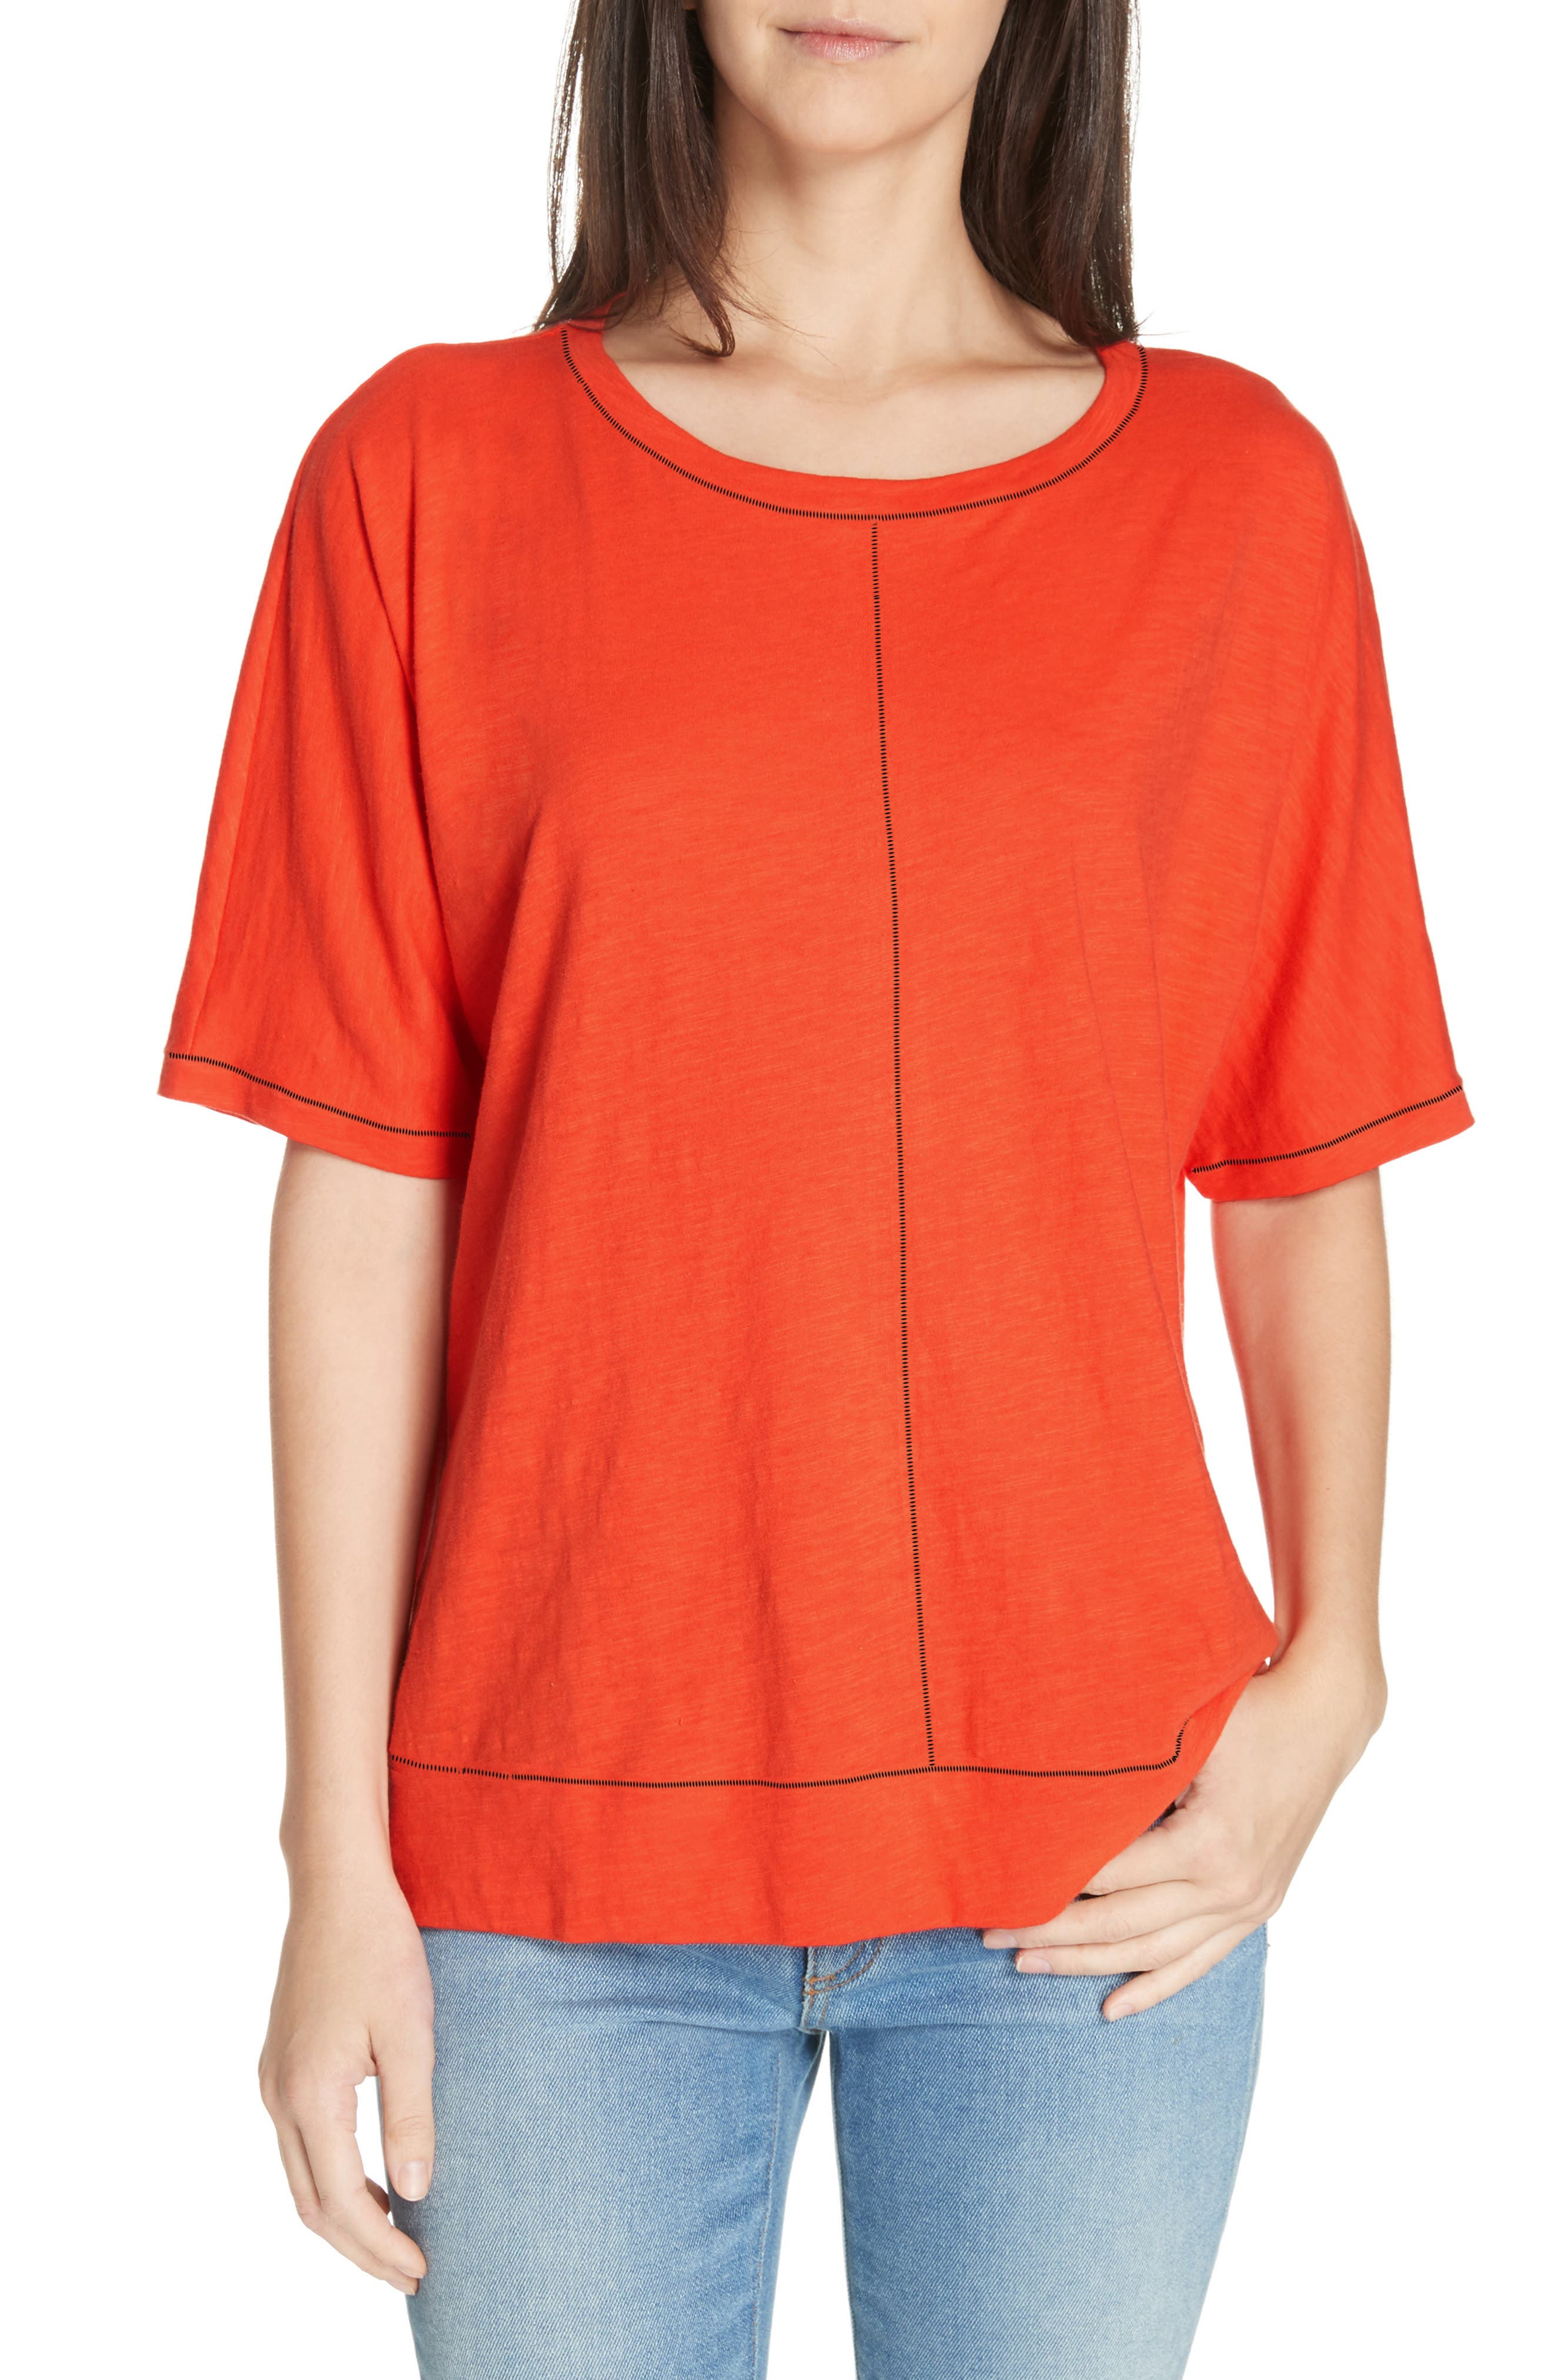 Jewel Neck Organic Cotton Tee by Eileen Fisher